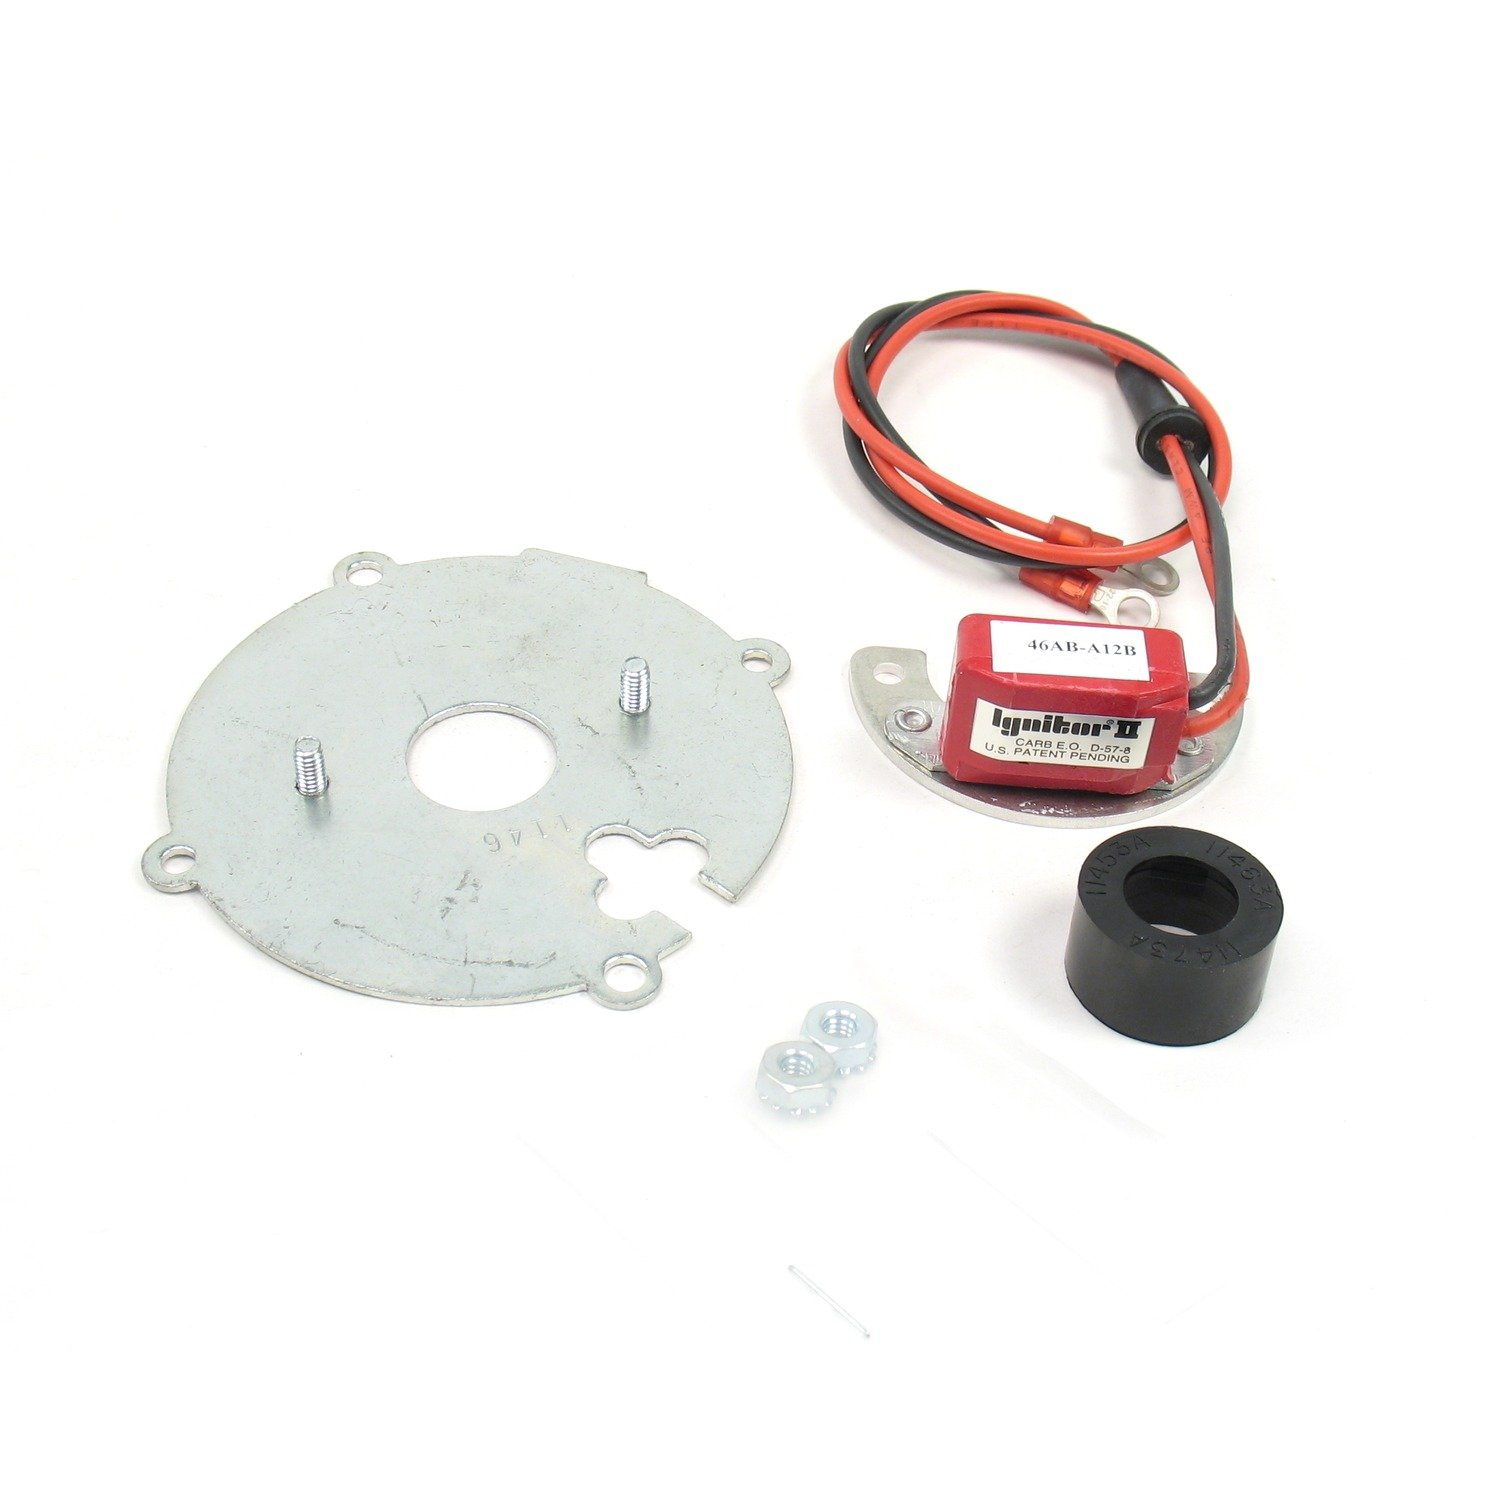 Pertronix 91146A Ignitor II Adaptive Dwell Control for Delco 4 Cylinder Clockwise Rotation